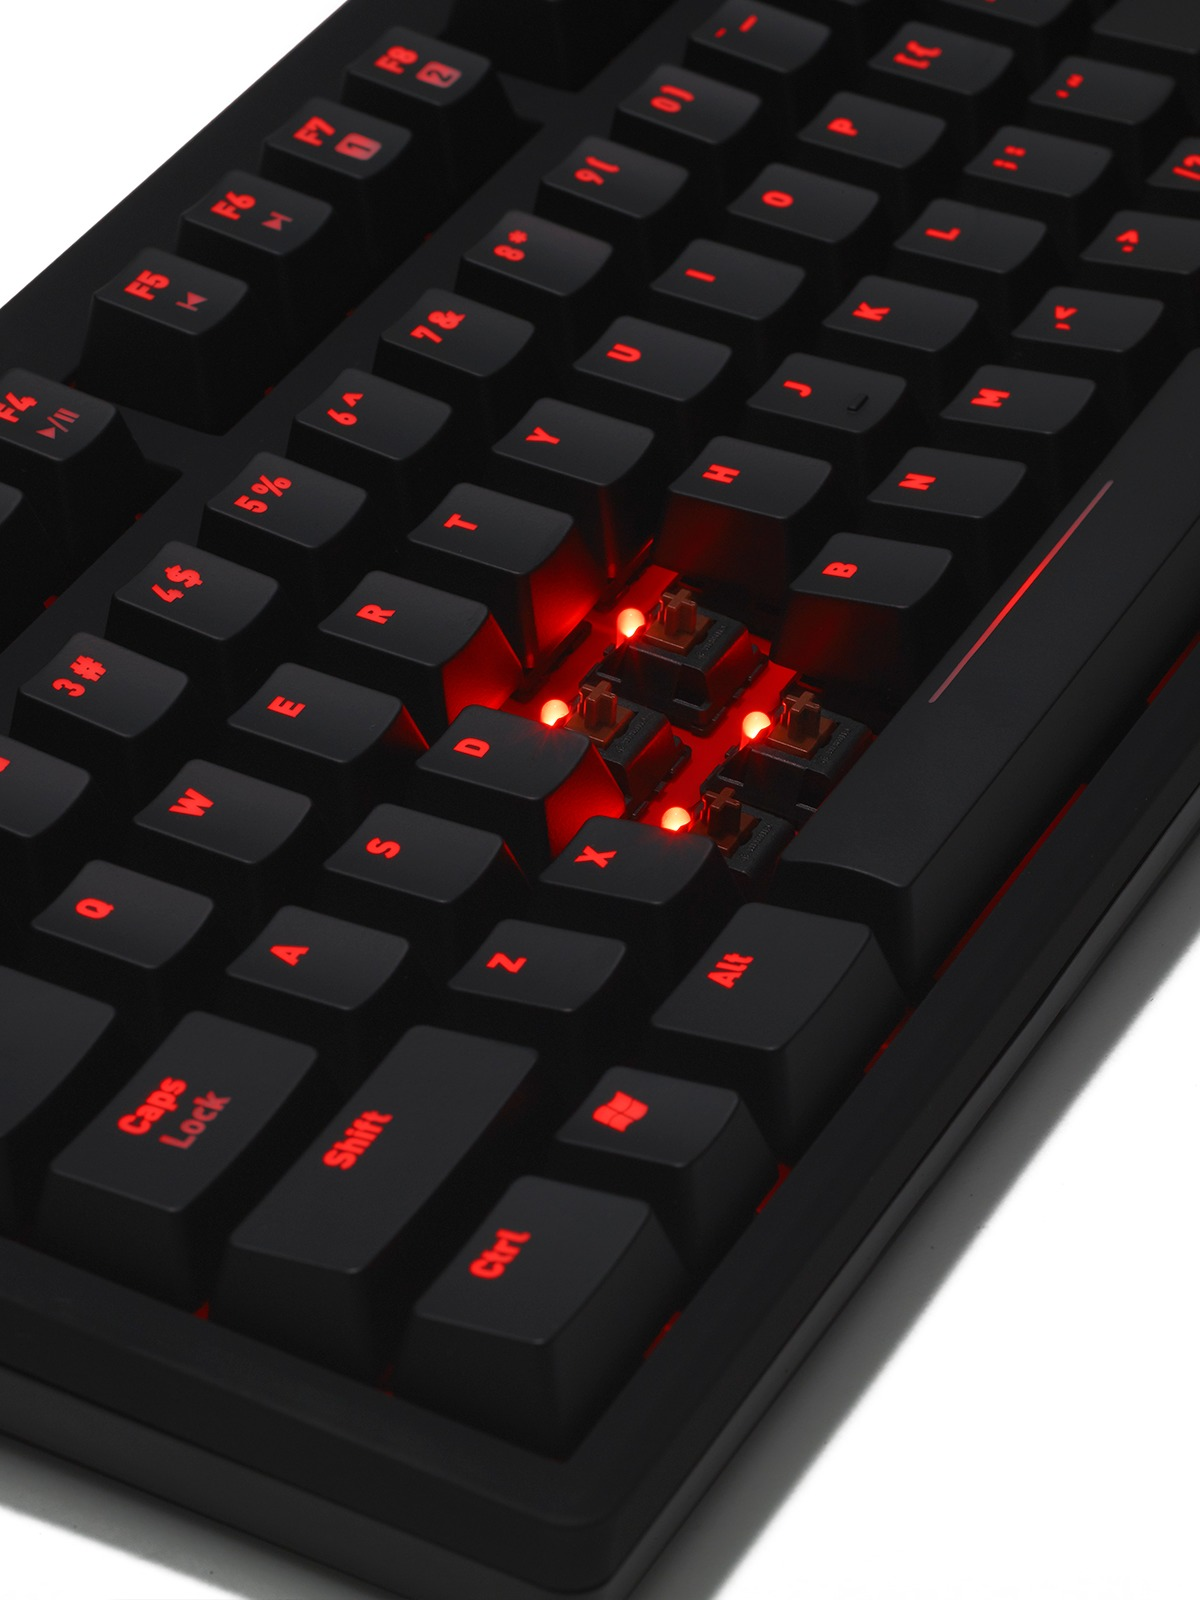 Fnatic Rush Pro Gaming Keyboard - Cherry MX Brown for PC Games image